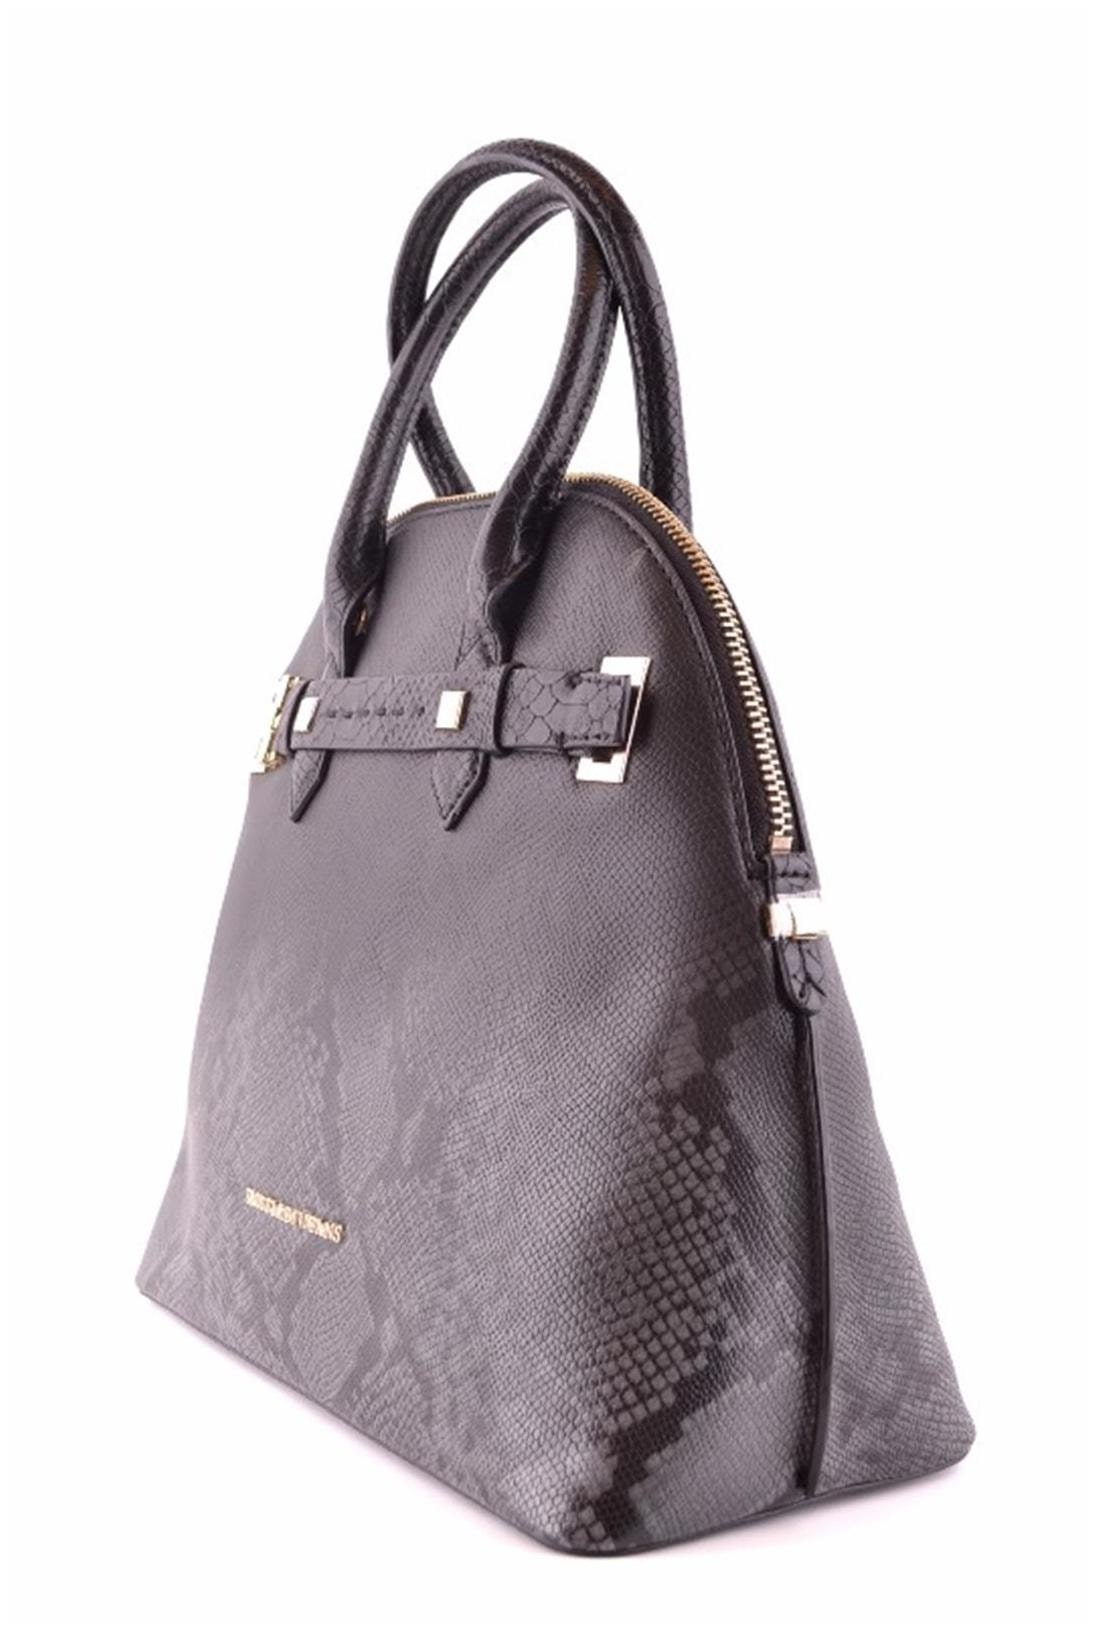 Buy TRUSSARDI JEANS WOMEN S MCBI299011O BLACK LEATHER HANDBAG    International Bazaar Online at Low Prices in India - Paytmmall.com 321d803e995d0